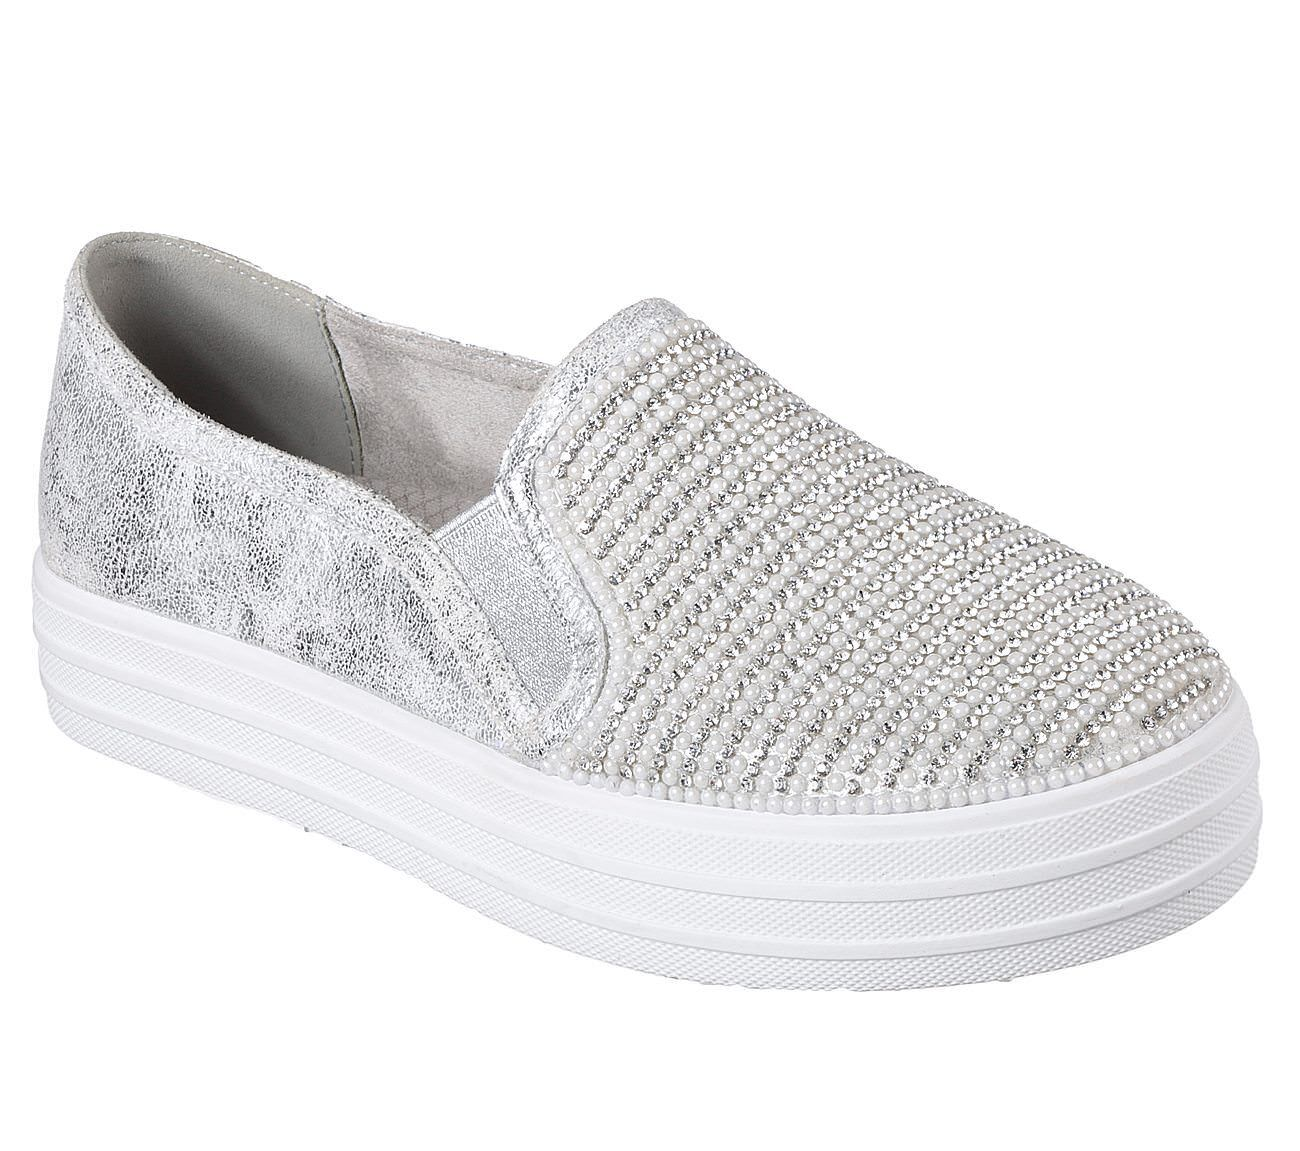 Skechers Dancer Double Up - Shiny Dancer Skechers Sneaker silber fe2b34